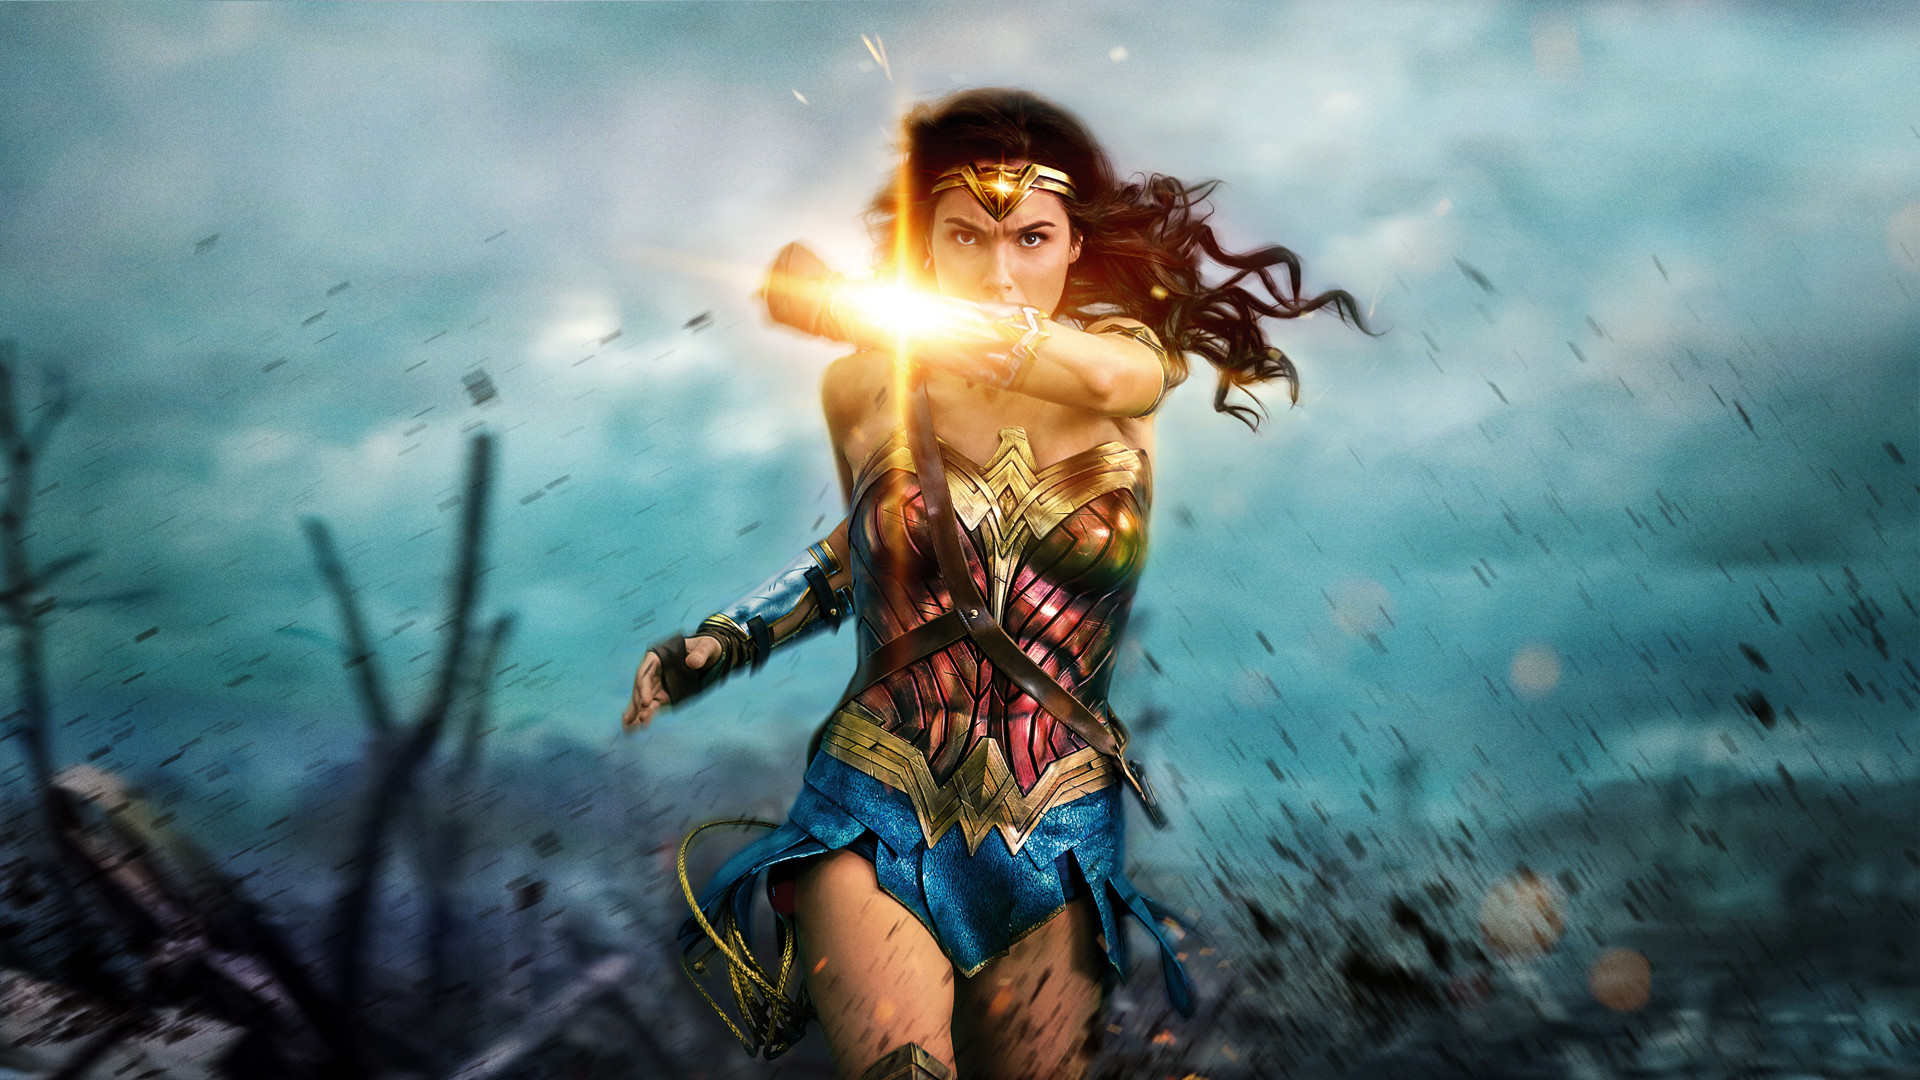 Wallpaper Wonder Woman 2017 Movies 6723: Wonderwoman Wallpaper (69+ Images